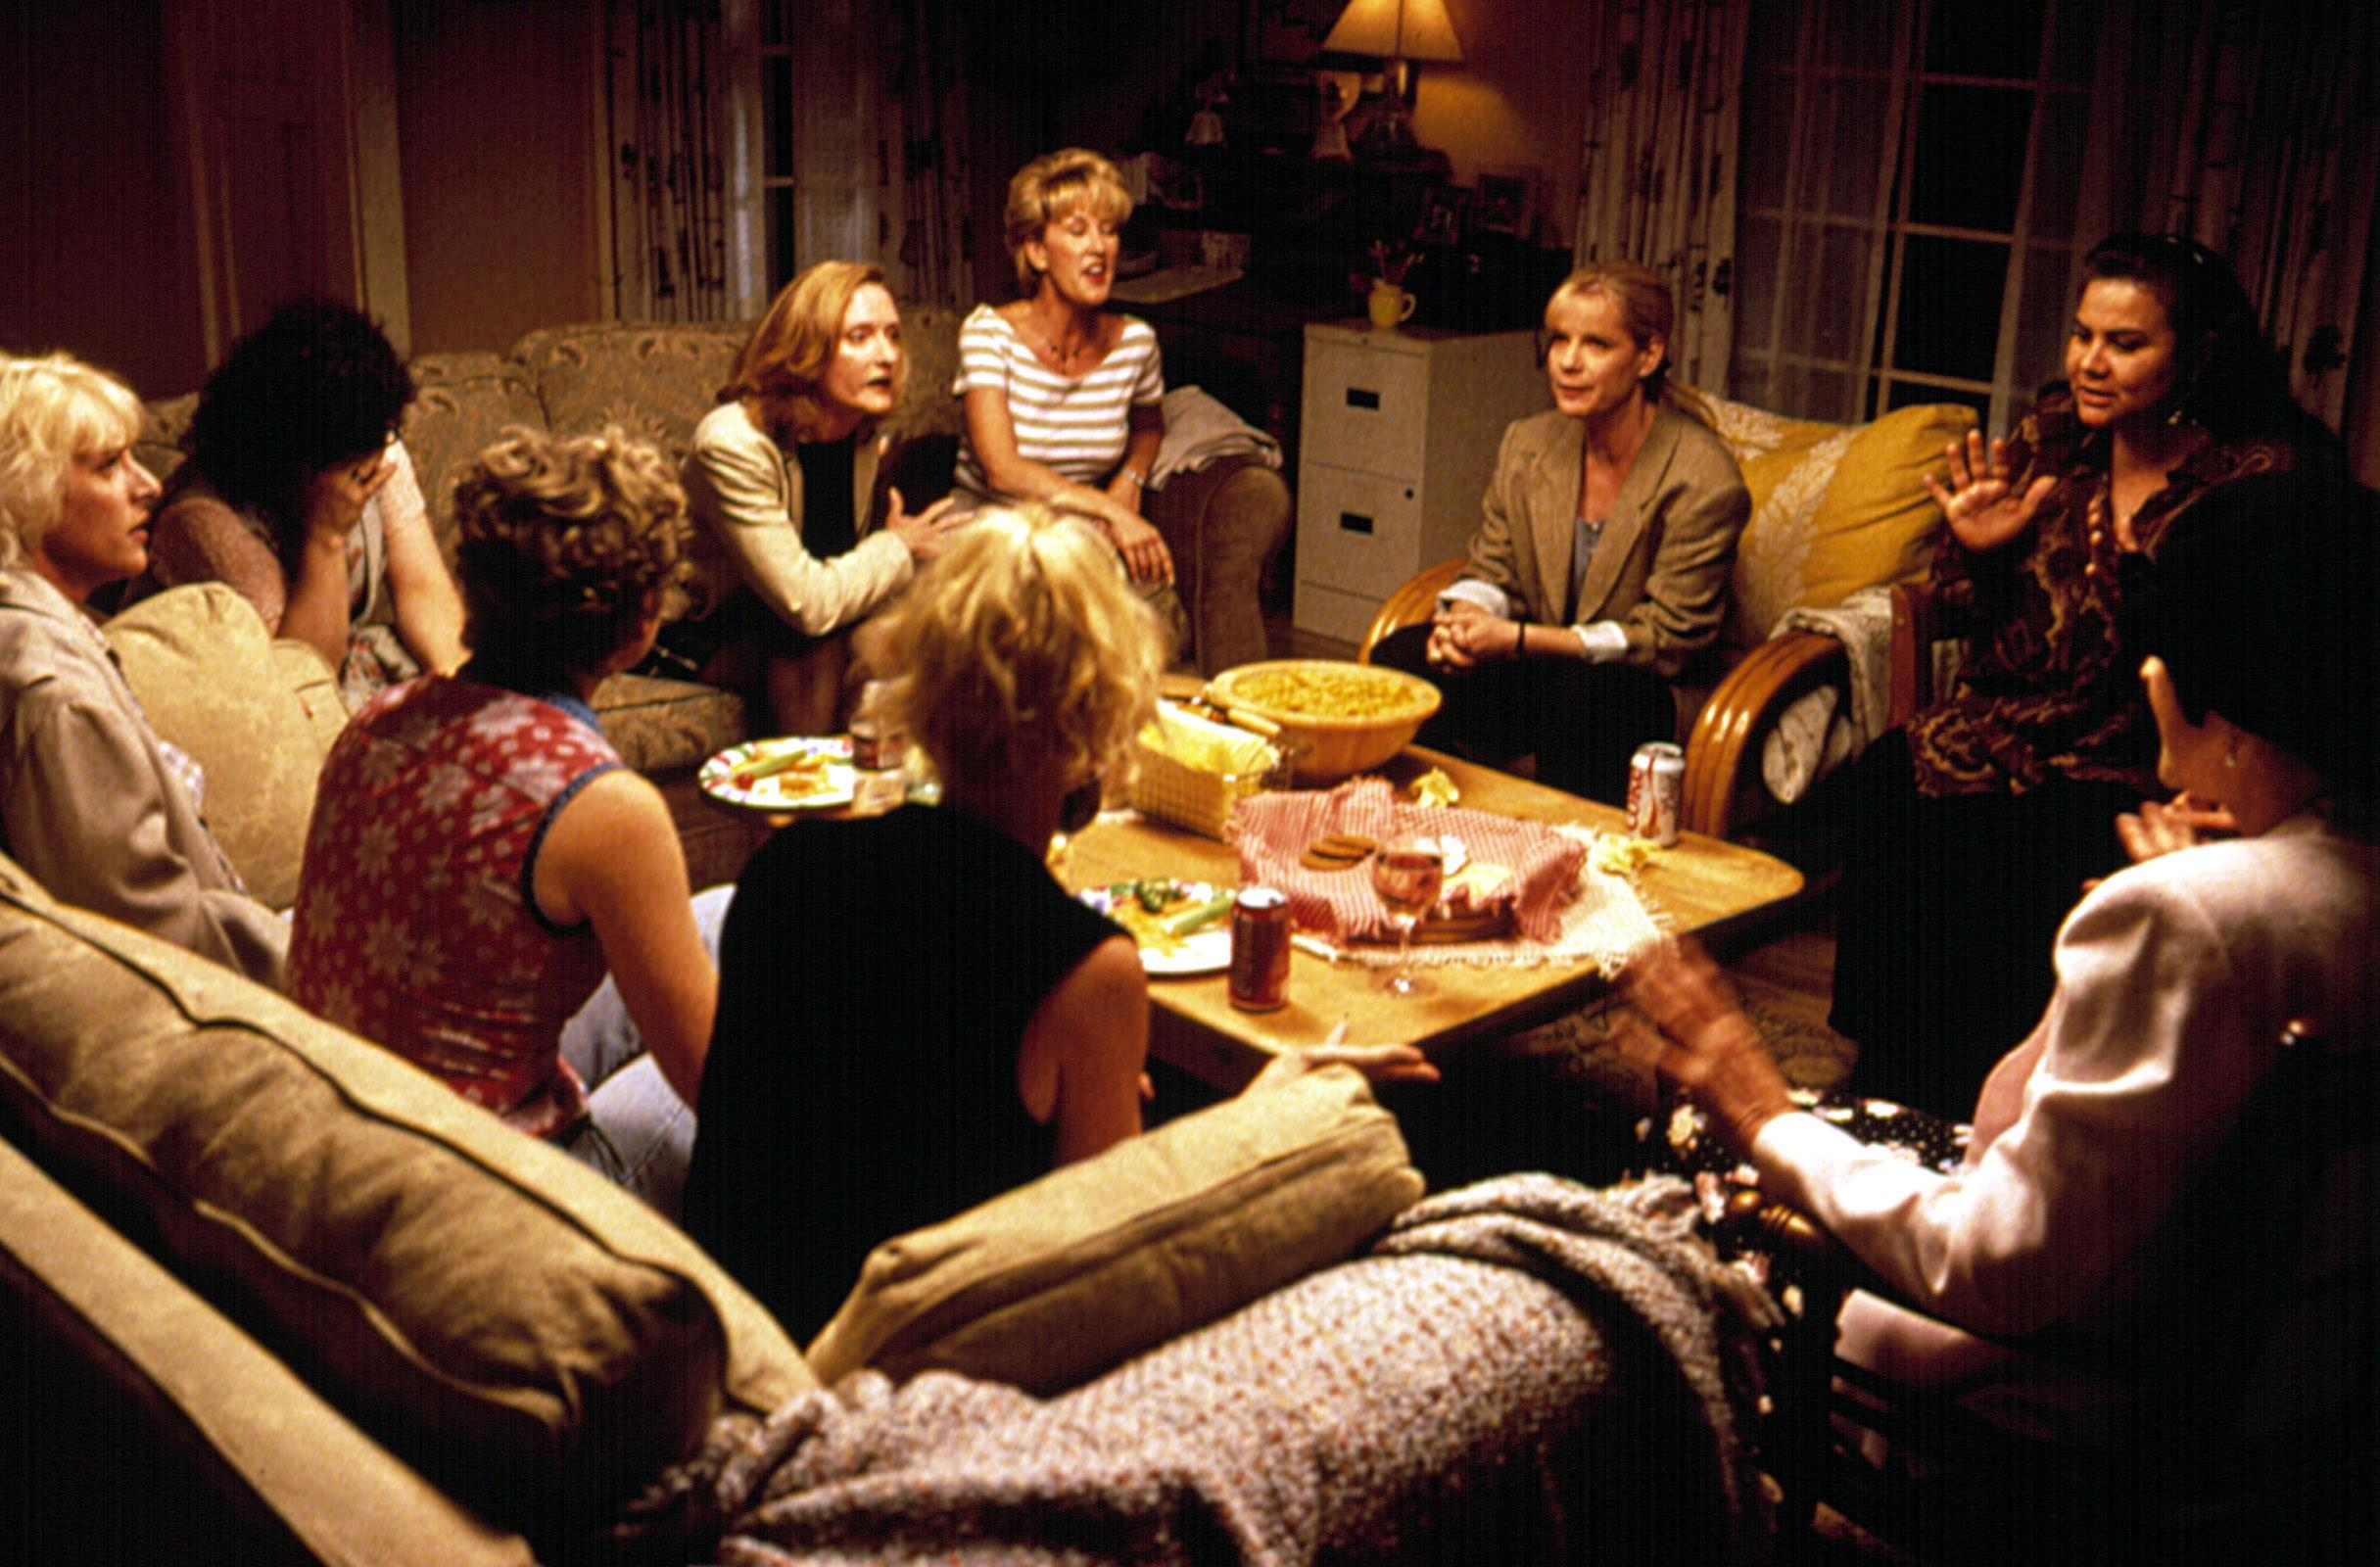 Bonnie Hunt, Larina Jean Adamson, Kelly Coffield Park, Alice Marie Crowe, Winnie Holzman, Diana Jordan, Susan Norfleet, Susan Pingleton, Cha-Cha Sandoval, and Hynden Walch in Jerry Maguire (1996)